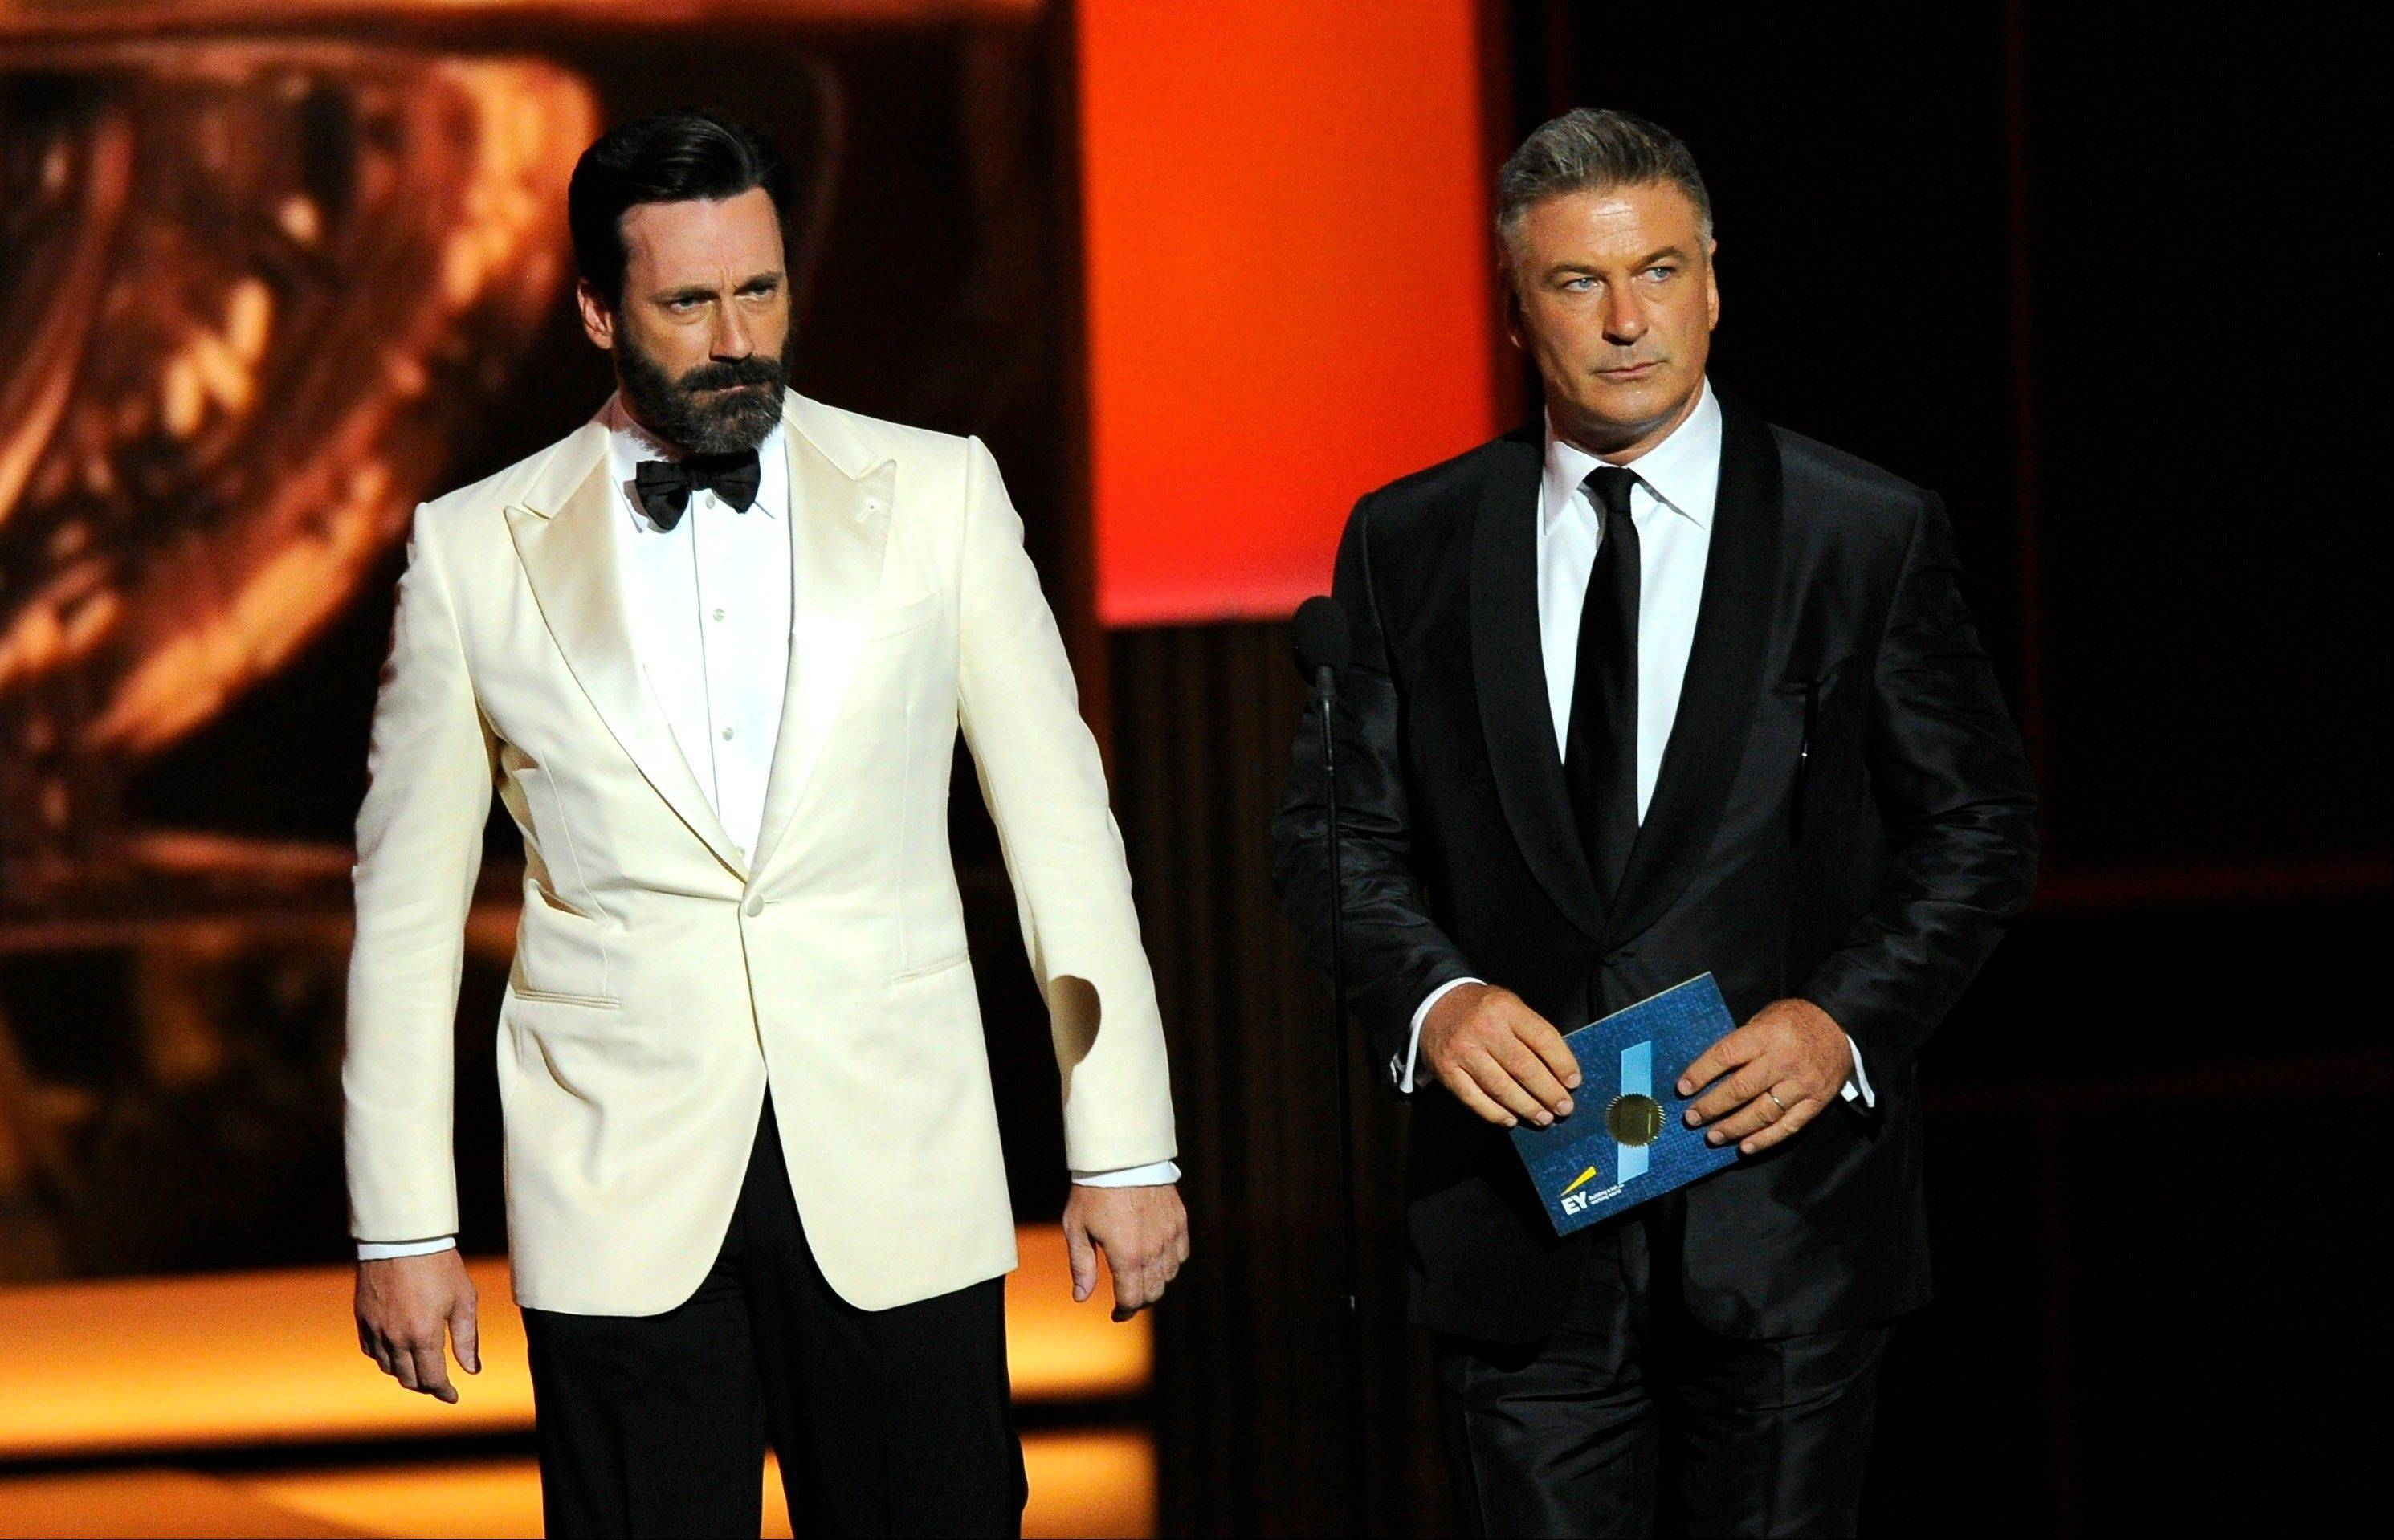 Jon Hamm, left, and Alec Baldwin present the award for outstanding lead actress in a comedy series onstage at the 65th Primetime Emmy Awards at Nokia Theatre, in Los Angeles. Much to Hamm�s surprise, it was his new facial hair that made headlines the following day.